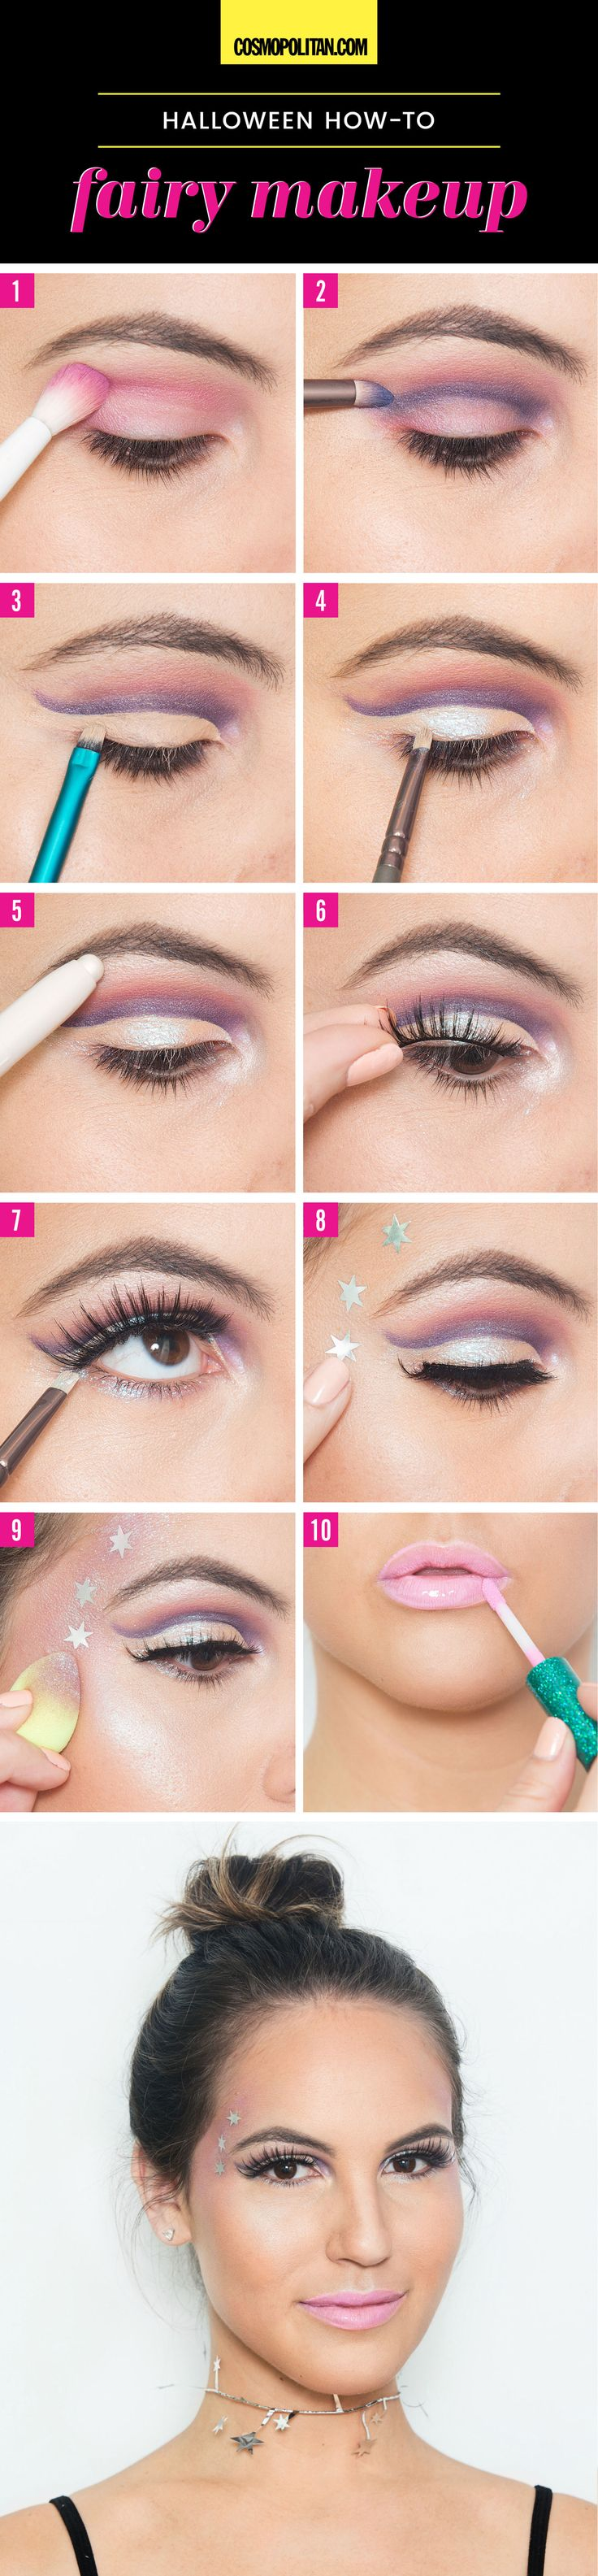 10 Halloween Looks You Can Create With Makeup You Already Have - Cosmopolitan.co...